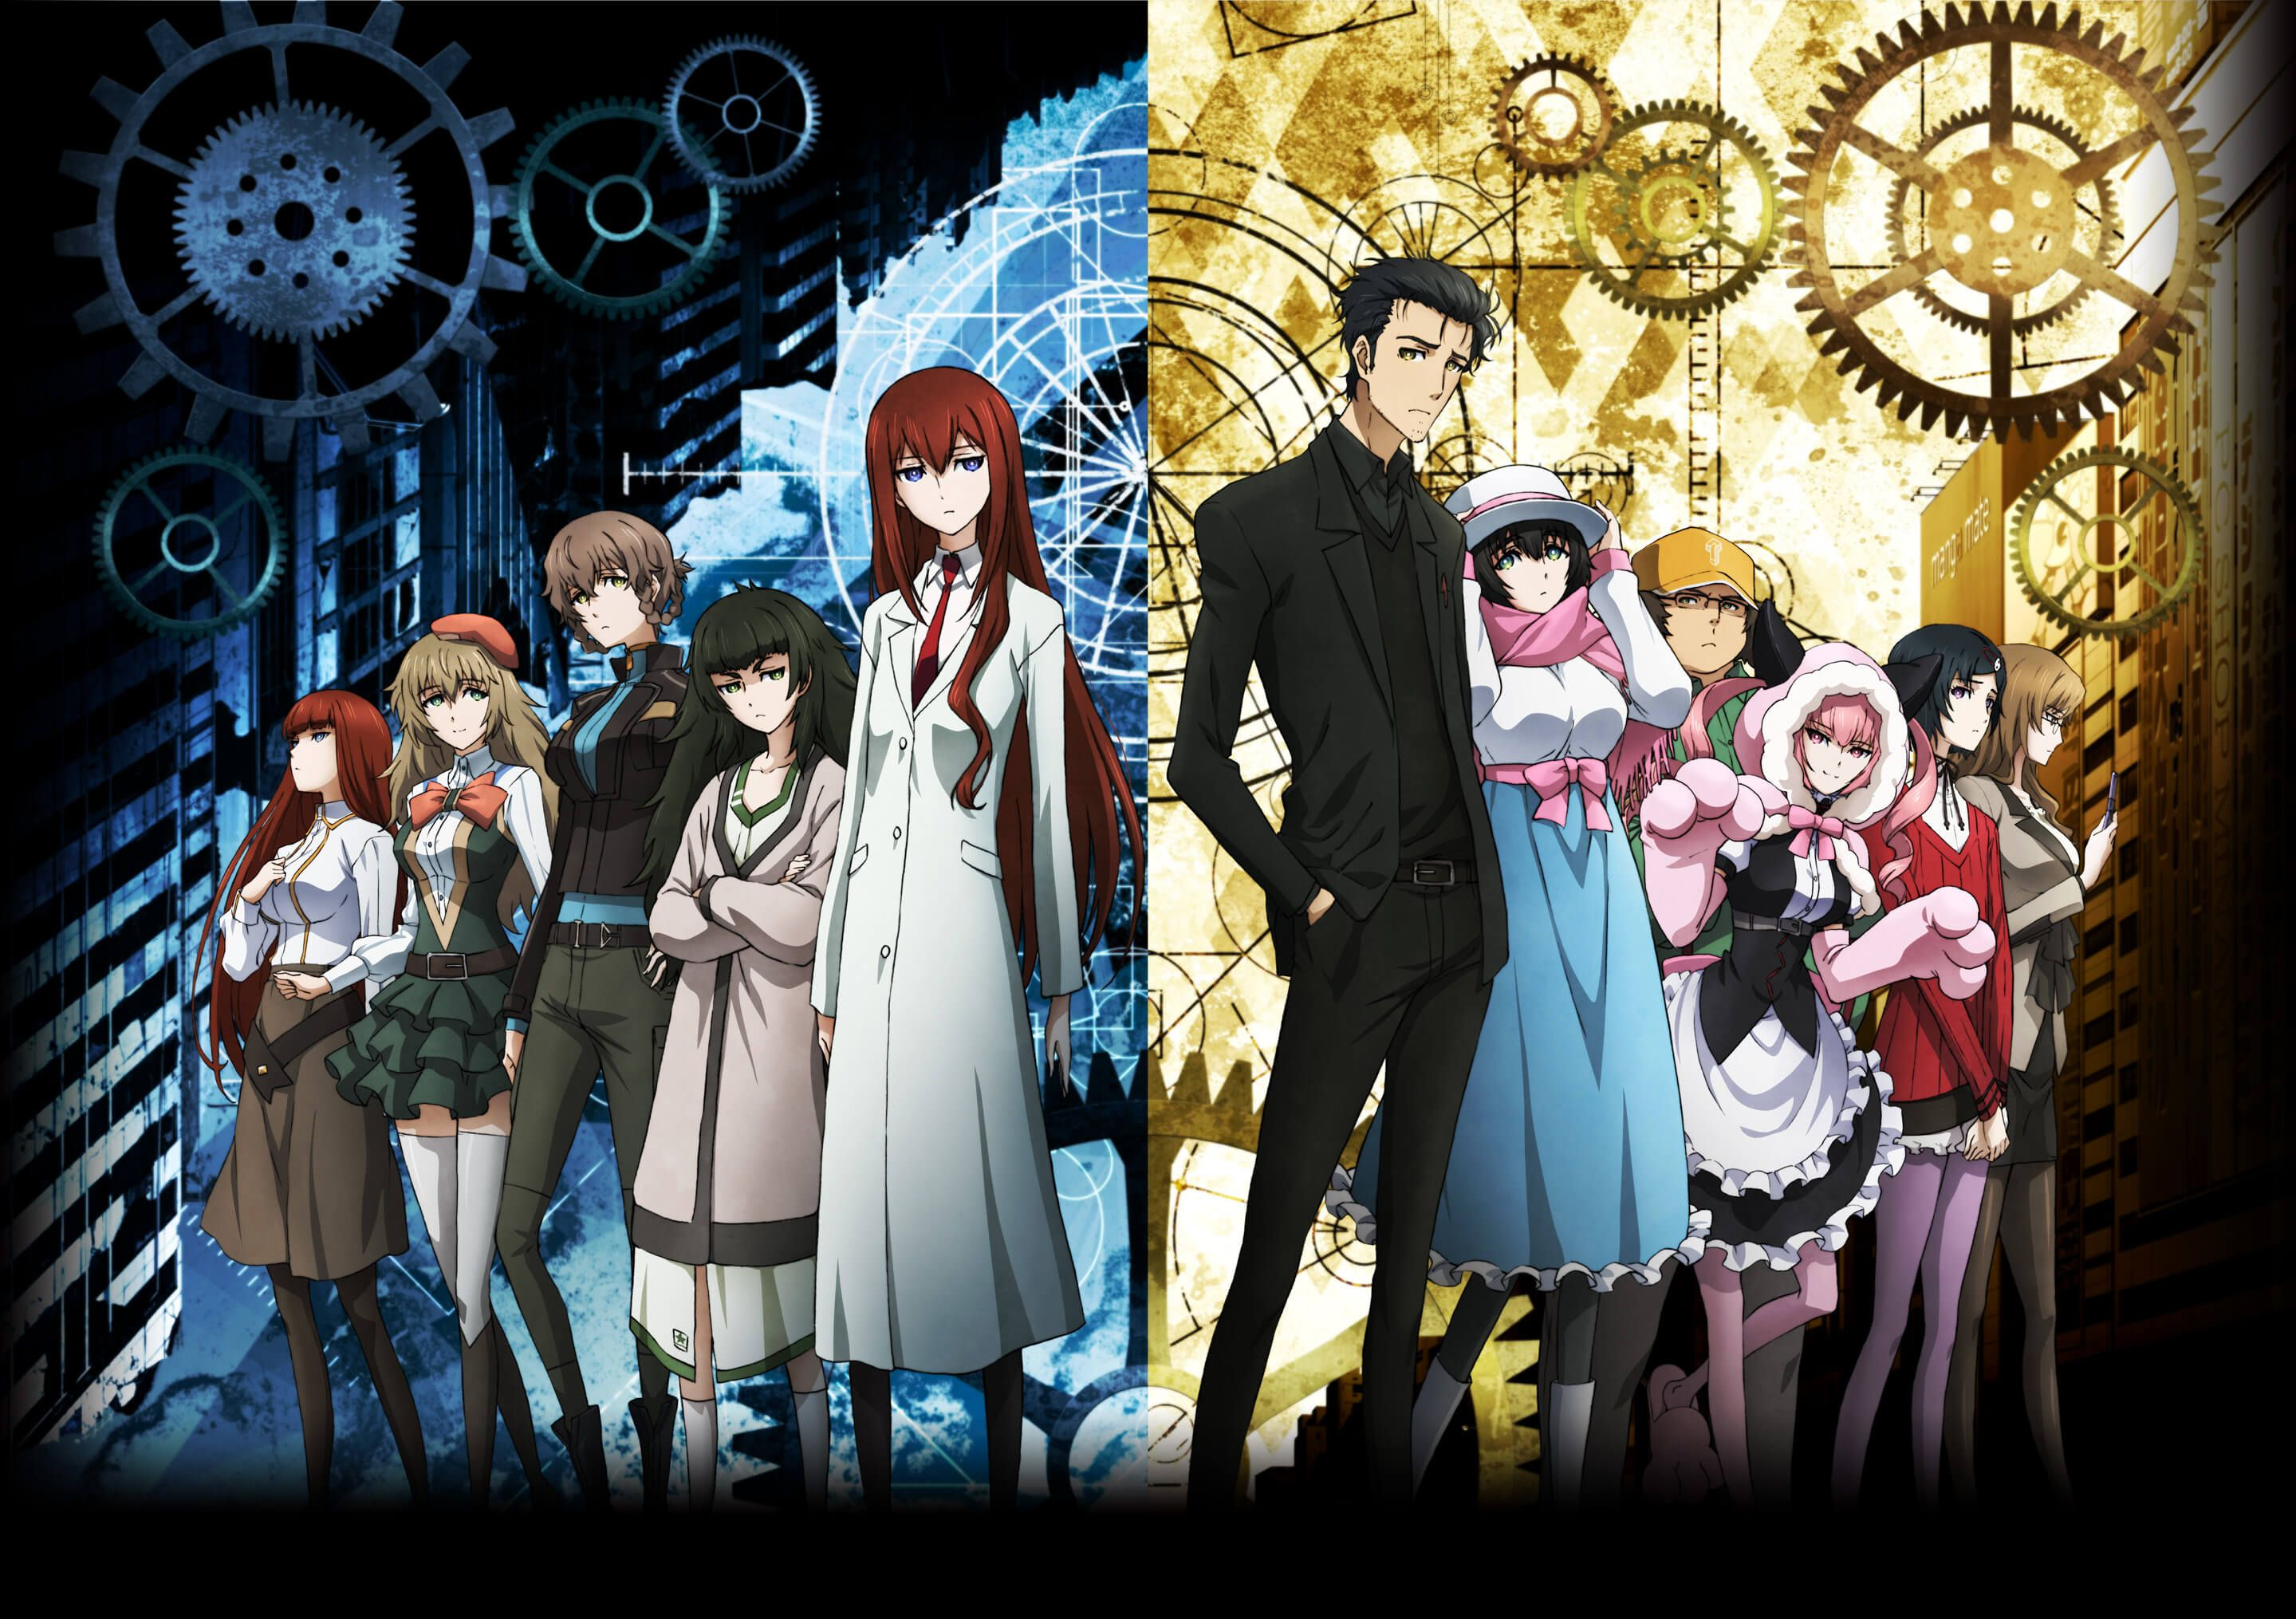 Top Scoring Links Steinsgate Steins Gate 0 Anime Anime Release